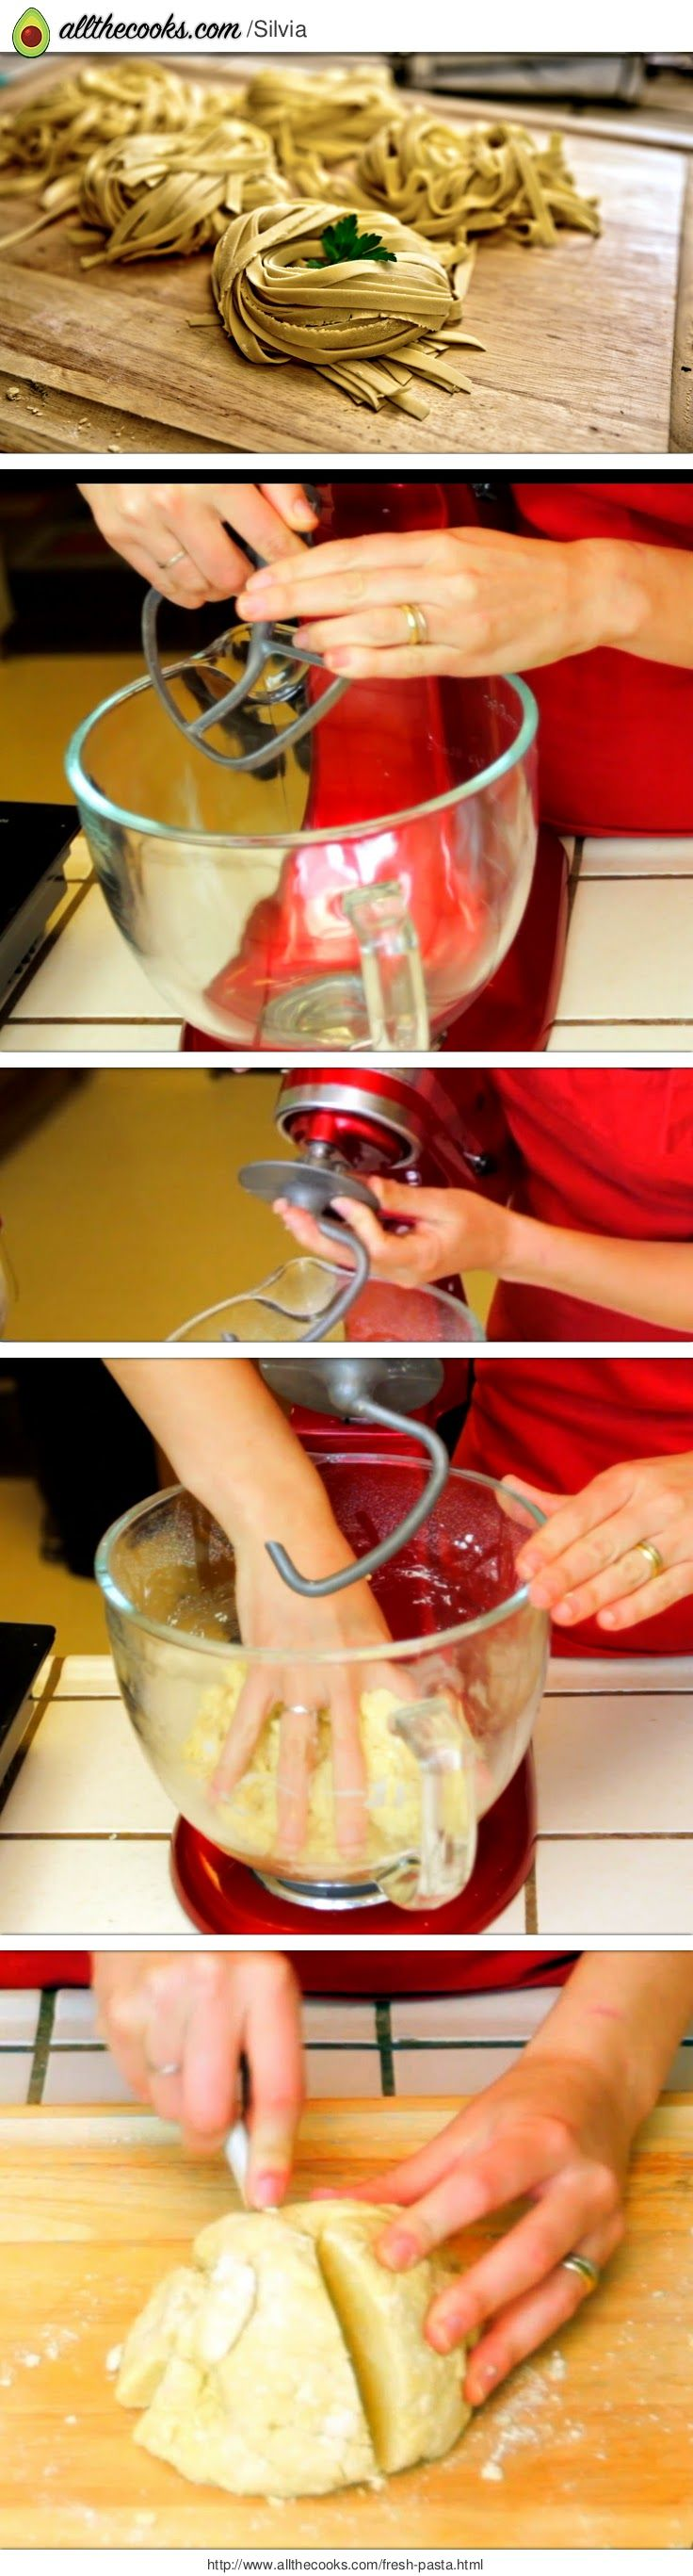 11 best images about KitchenAid Mixer Recipes on Pinterest | Whole ...